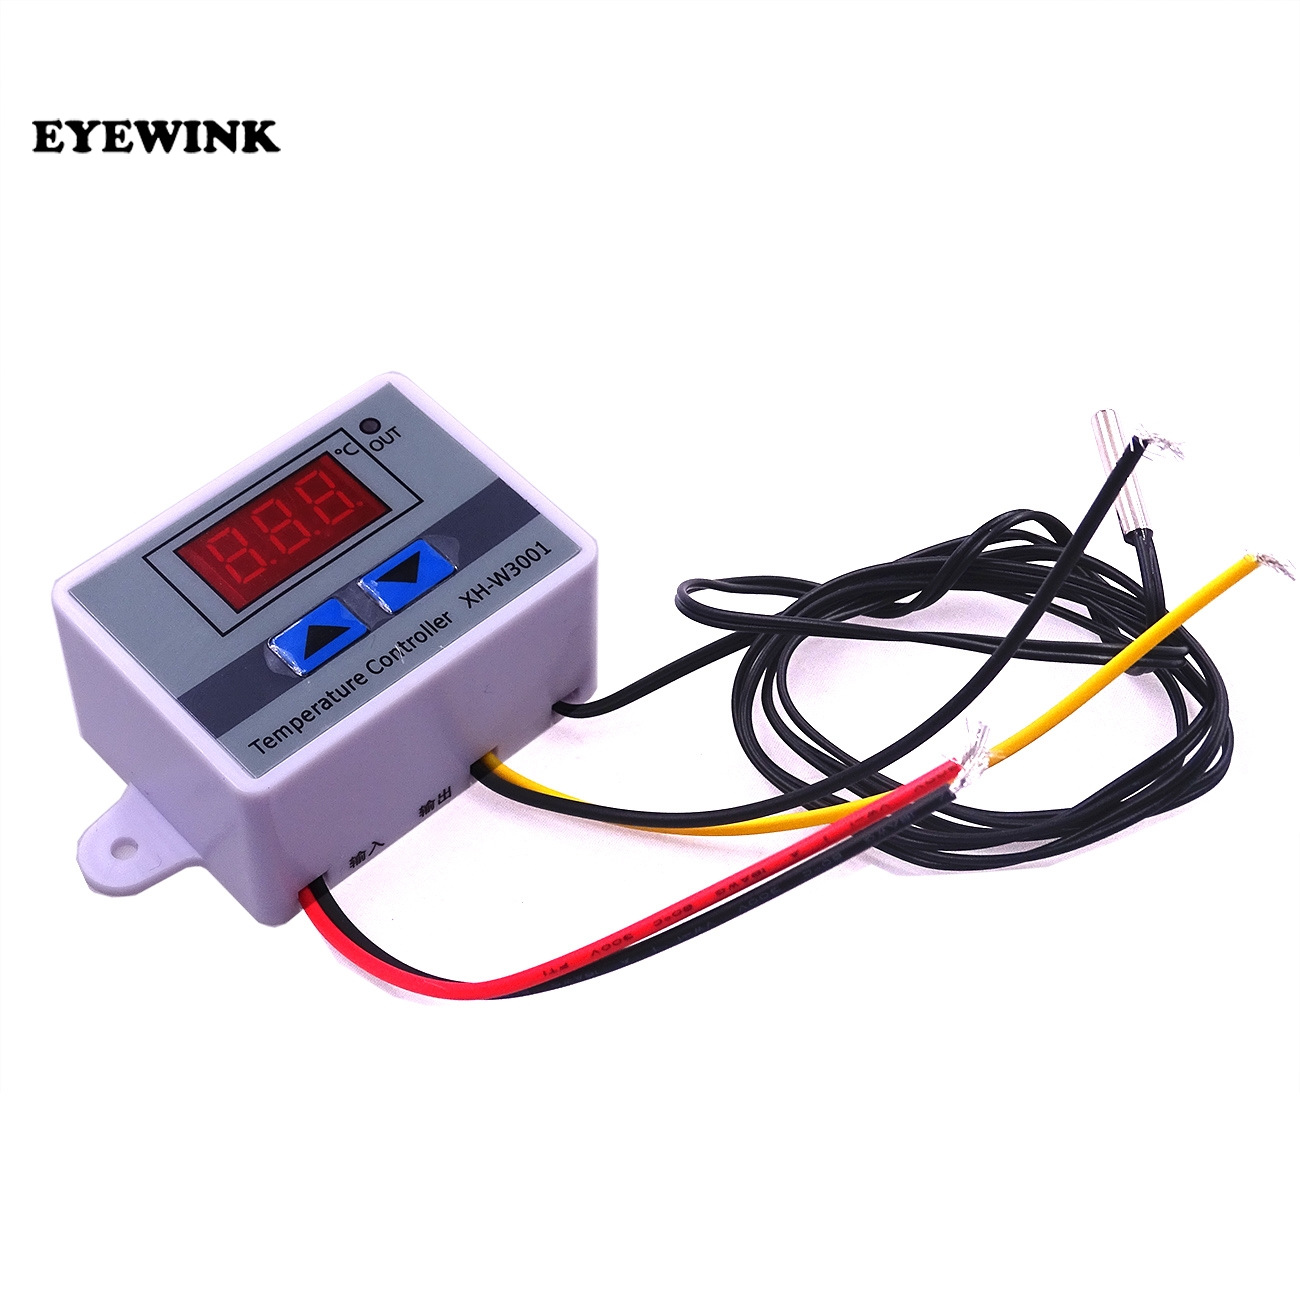 20pcs 220V XH W3001 W3001 Temperature Controller Digital LED Temperature Controller Thermometer Thermo Controller Switch Probe